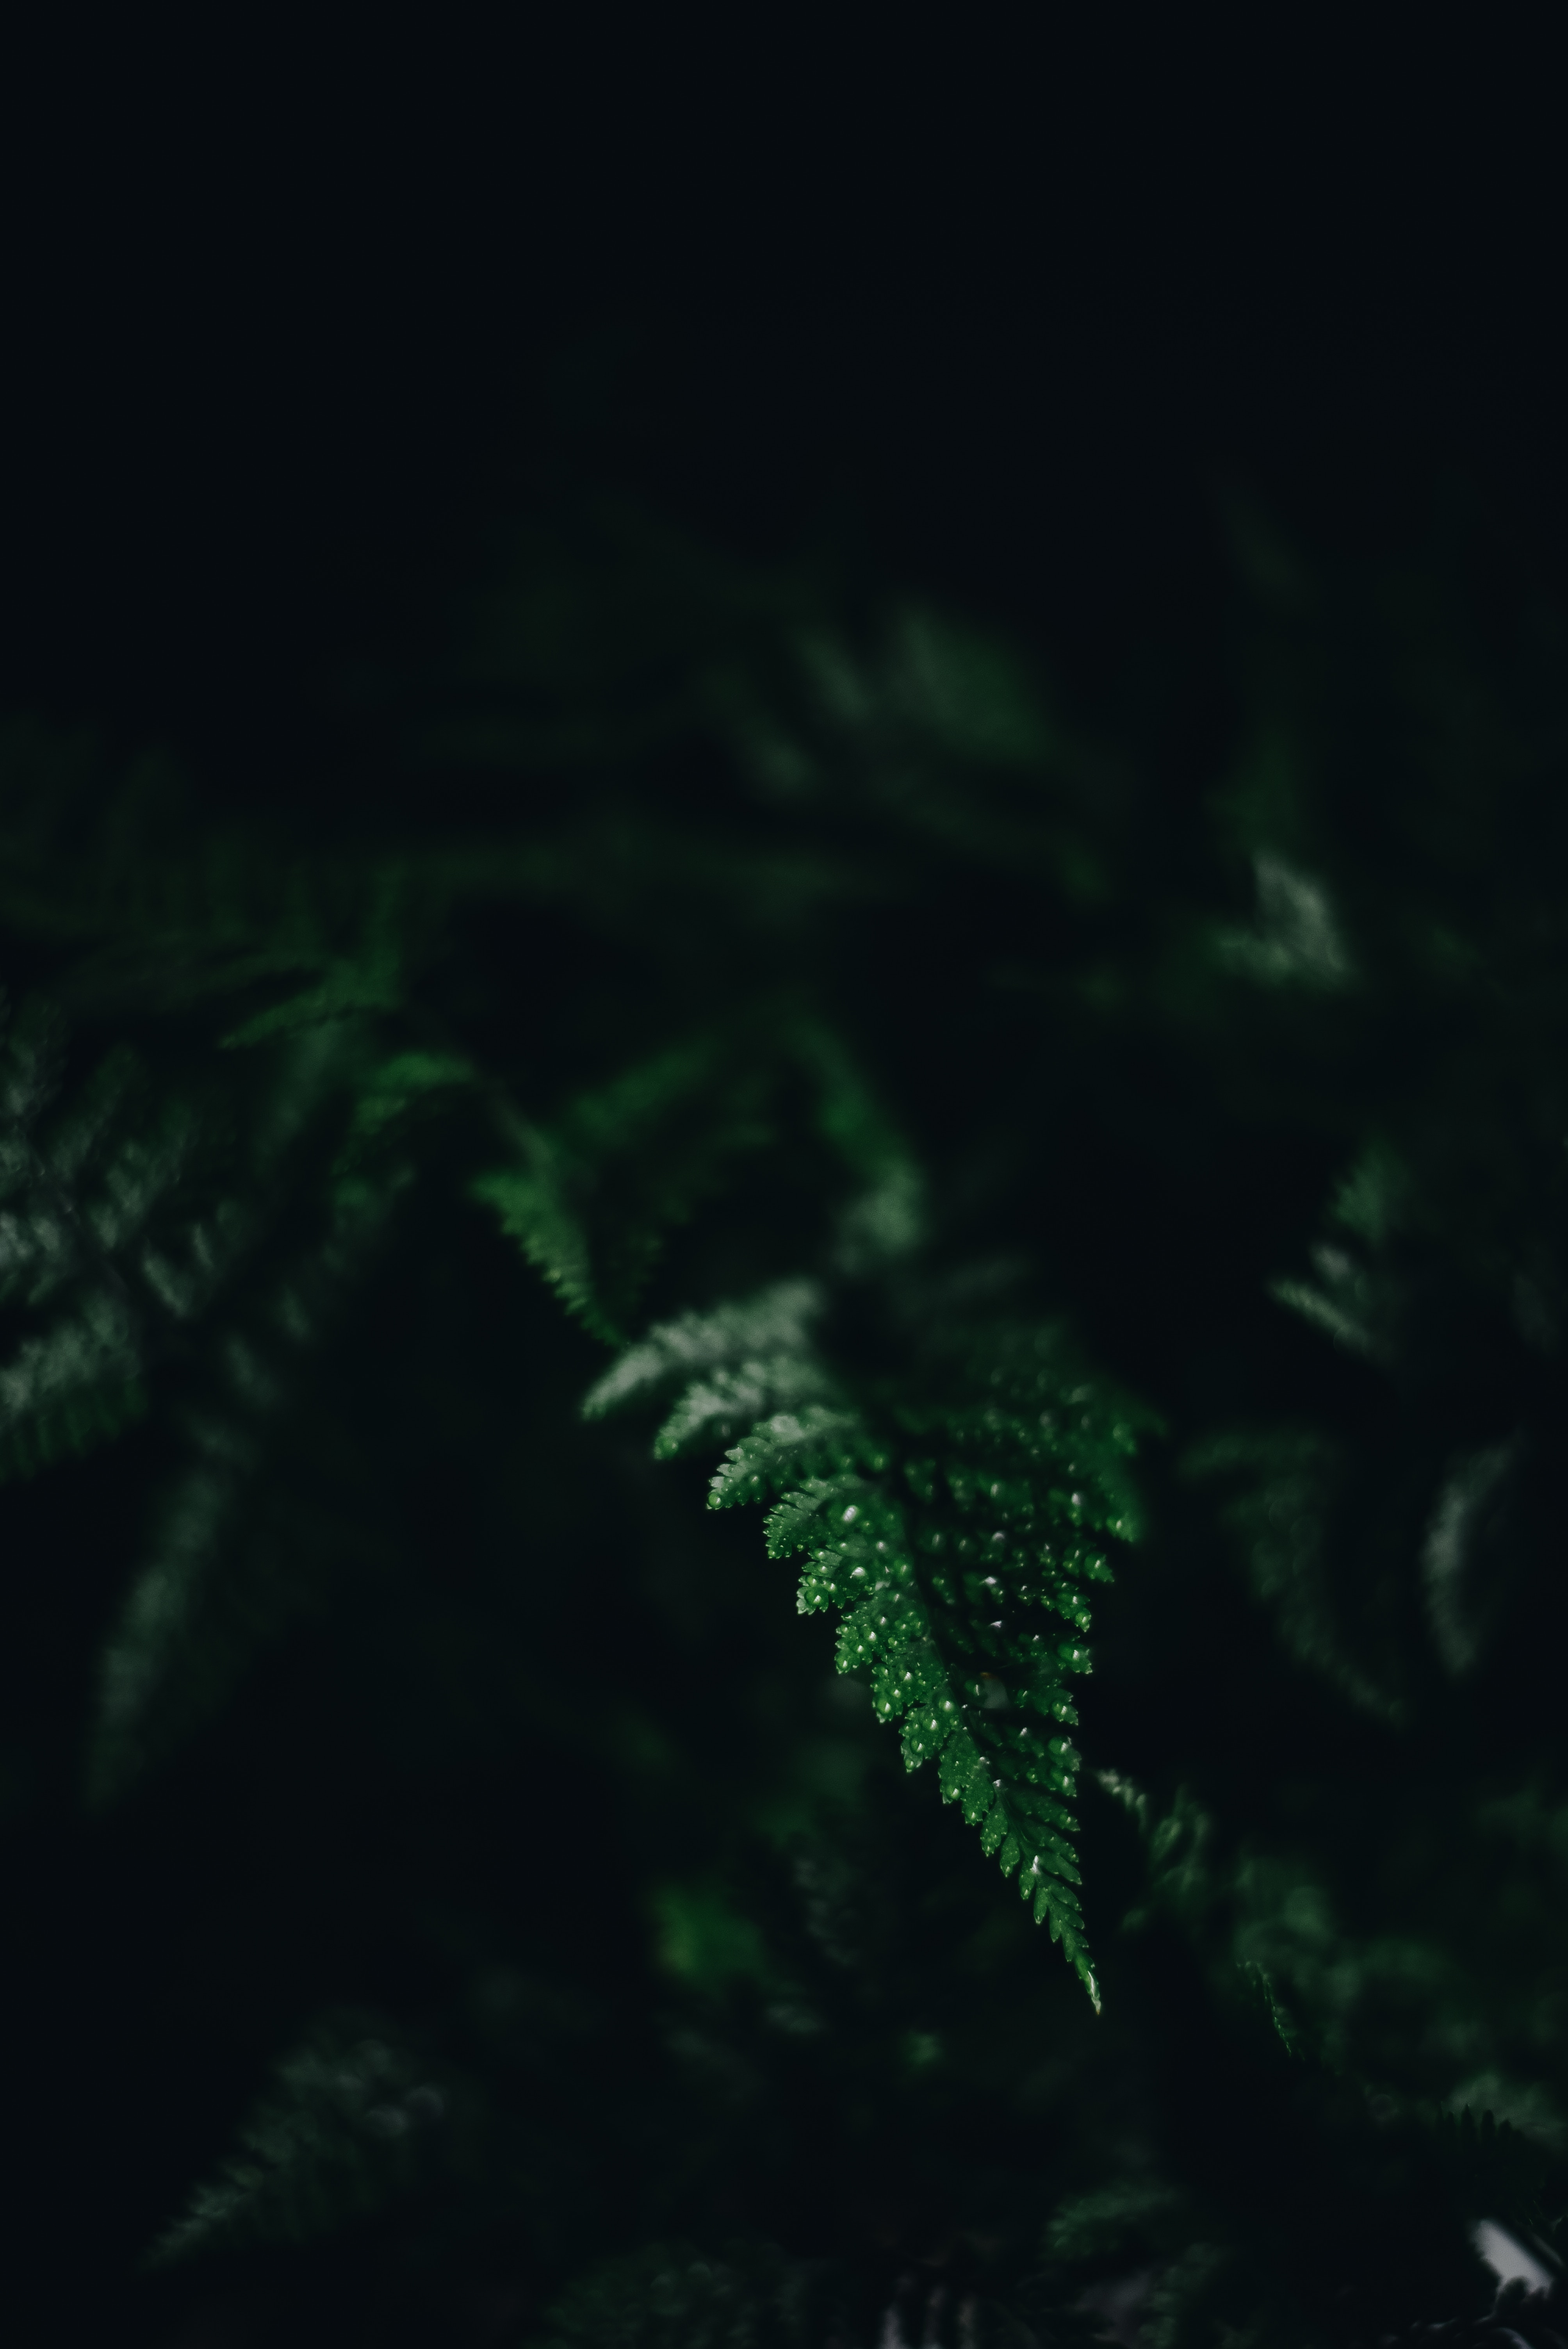 59344 download wallpaper Macro, Dark, Fern, Sheet, Leaf, Carved, Shadow screensavers and pictures for free